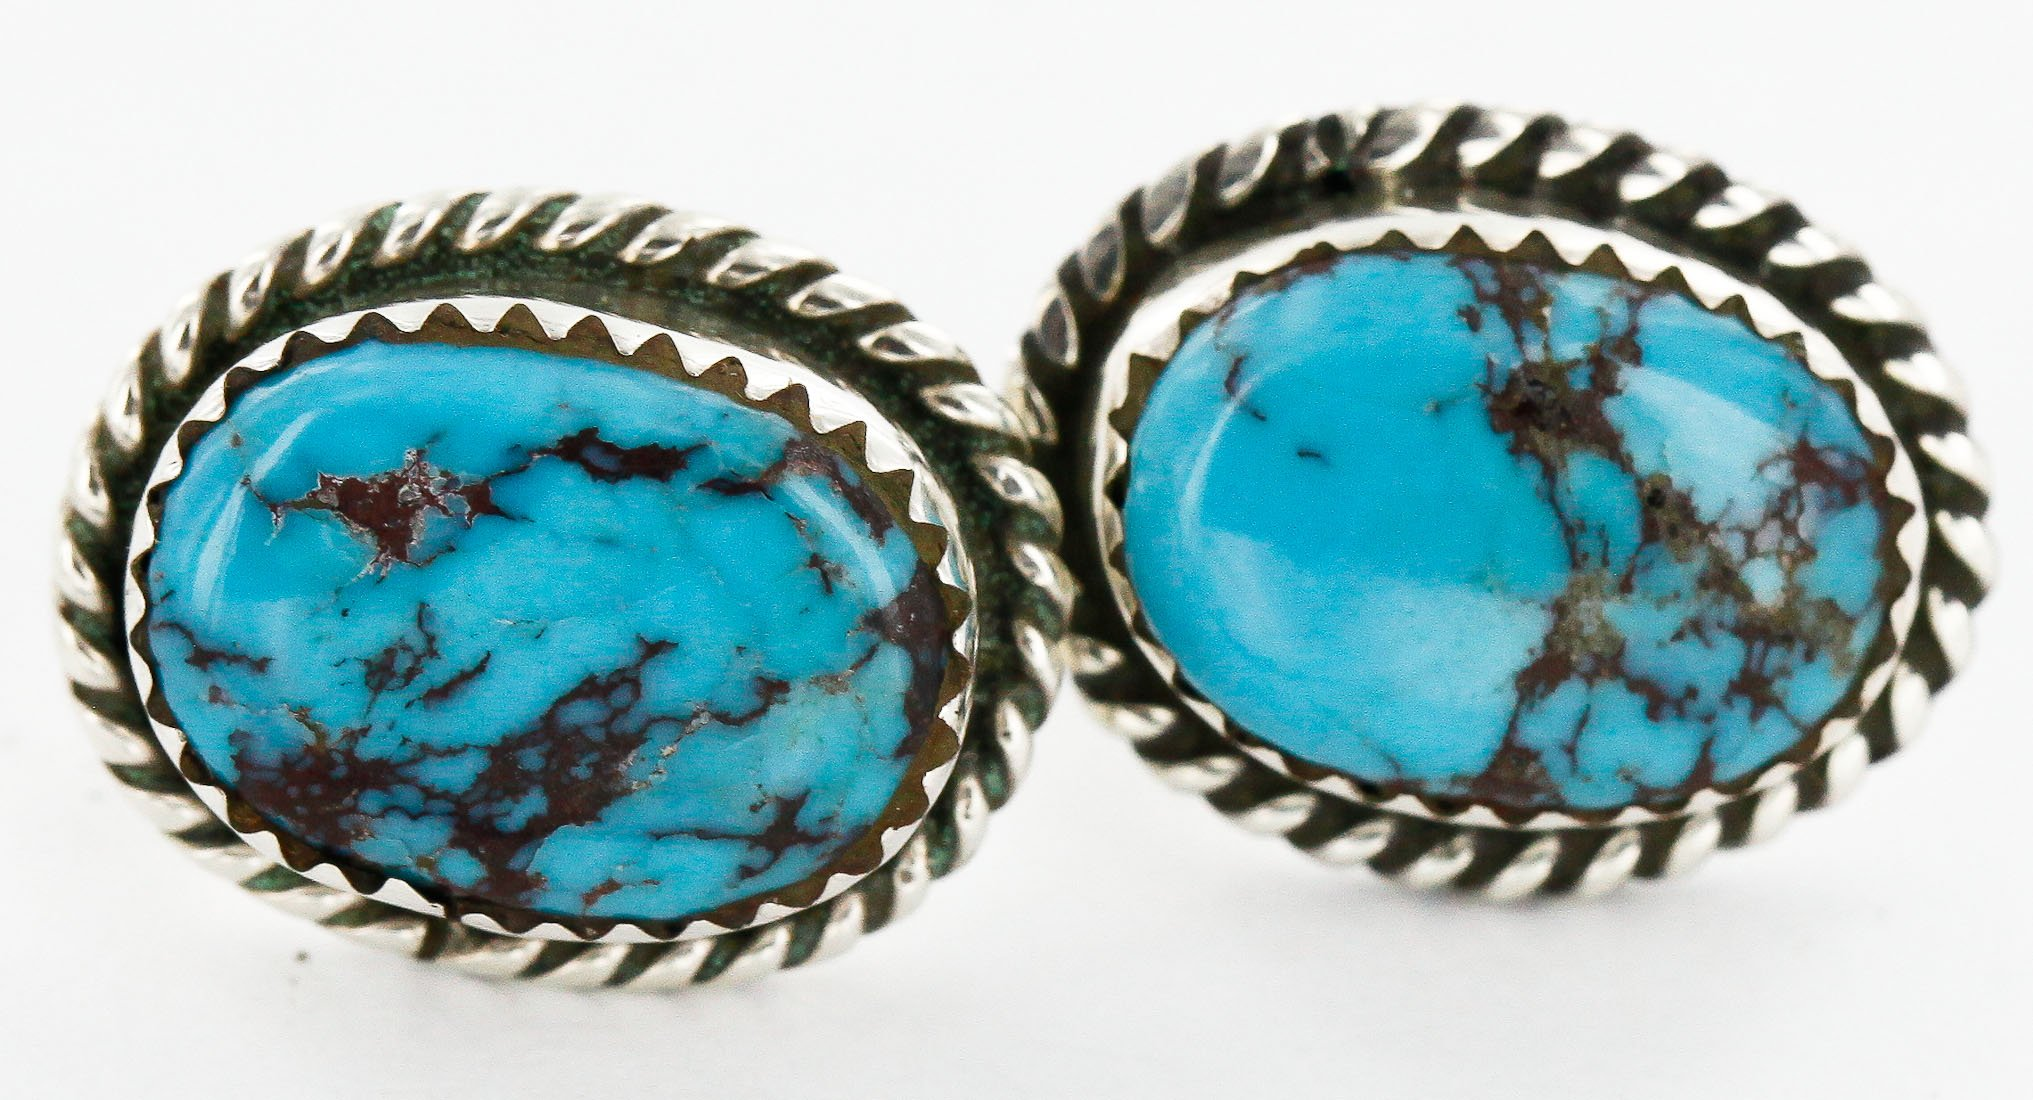 $100 Retail Tag Authentic Handmade Made by Robert Little Navajo Silver Hooks Stud Native American Earrings Natural Turquoise